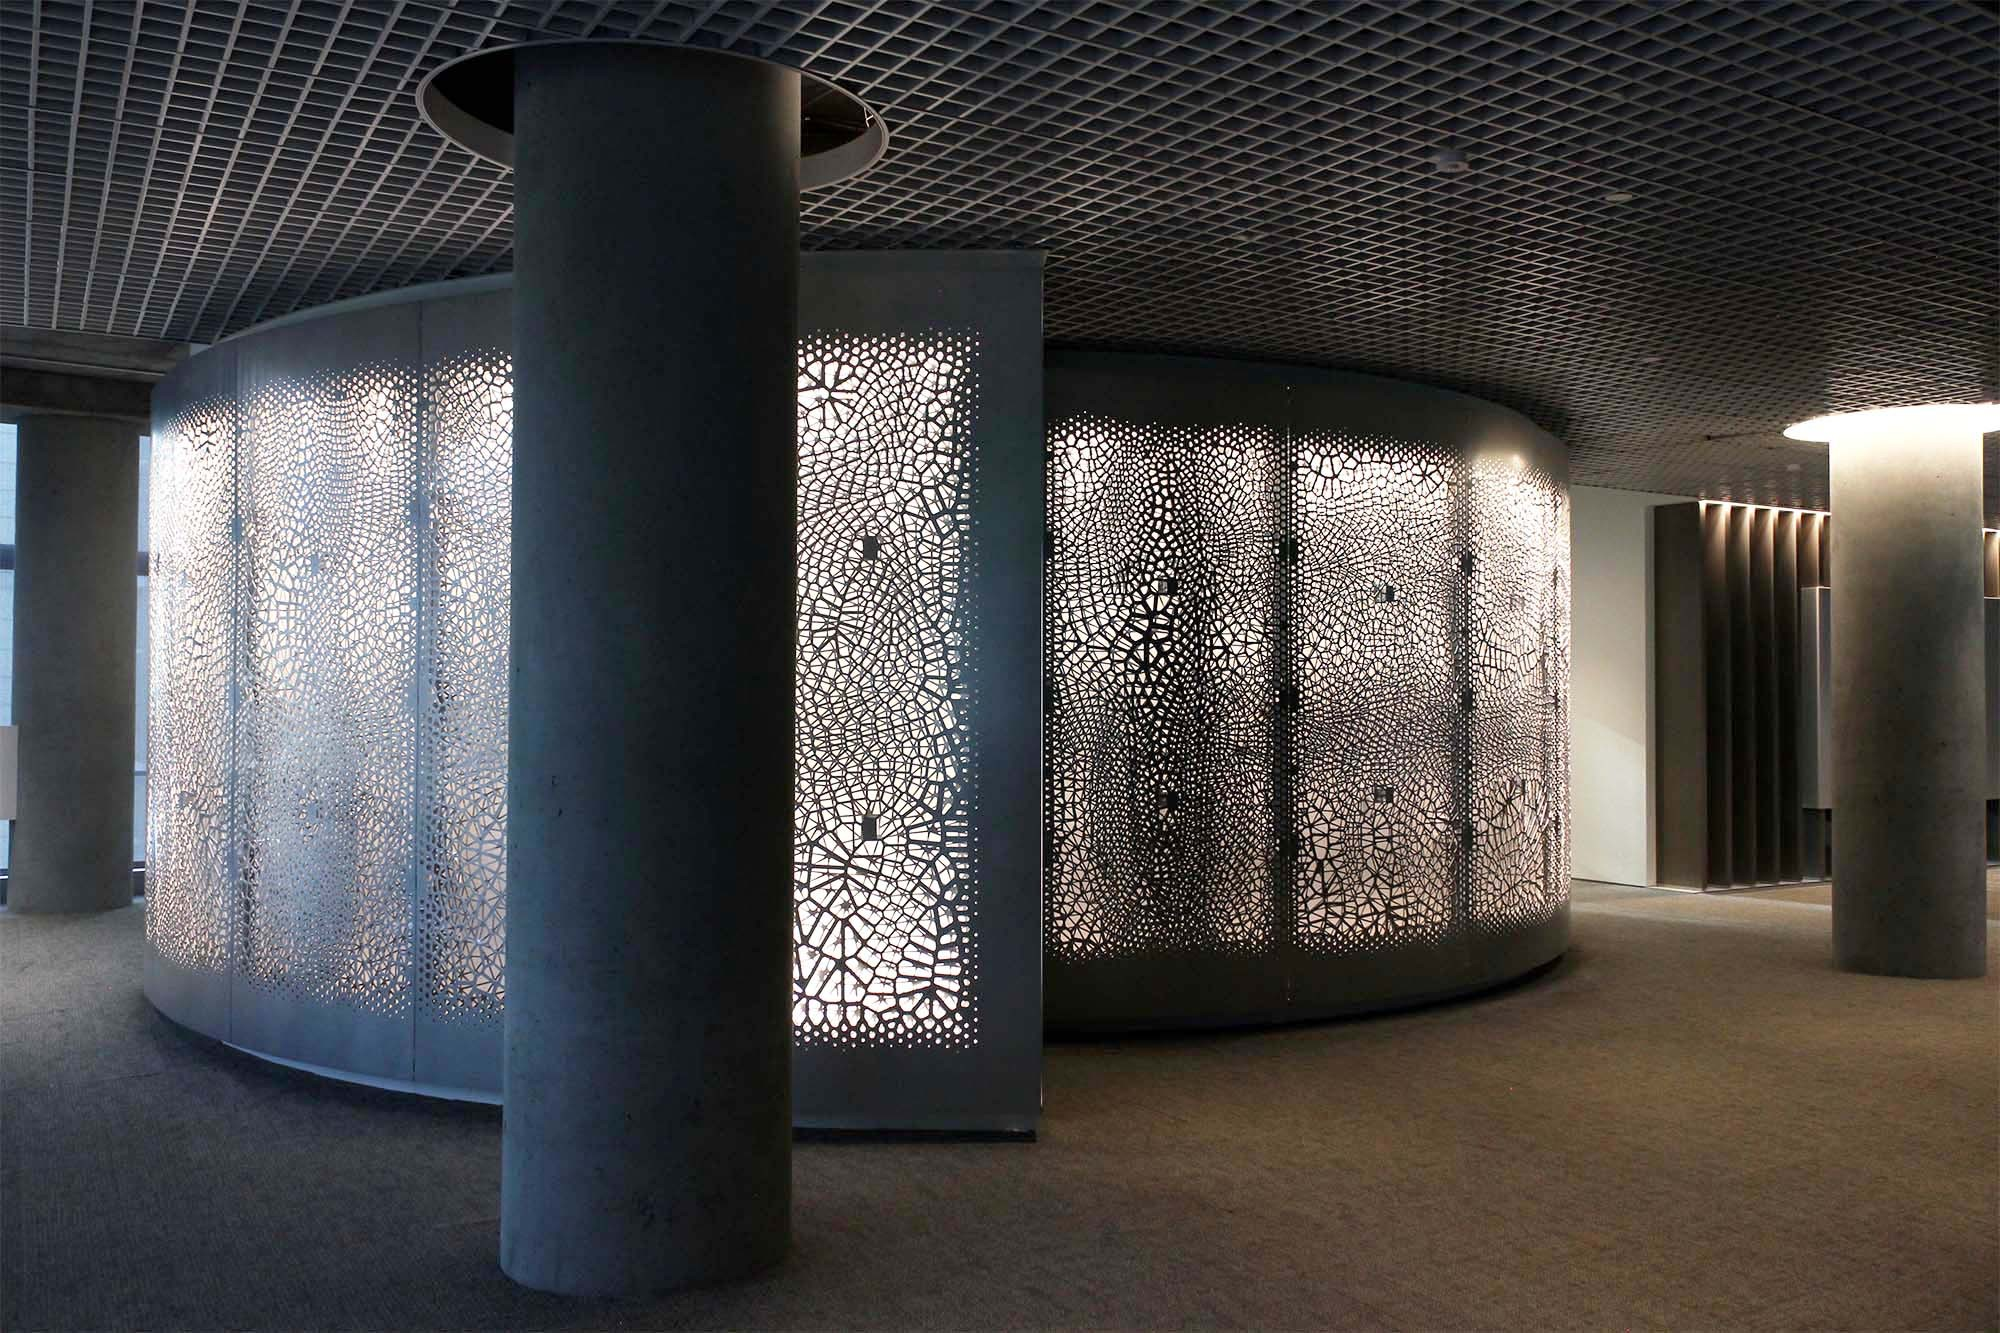 Gallery of Big Data Becomes Architecture in This CNC